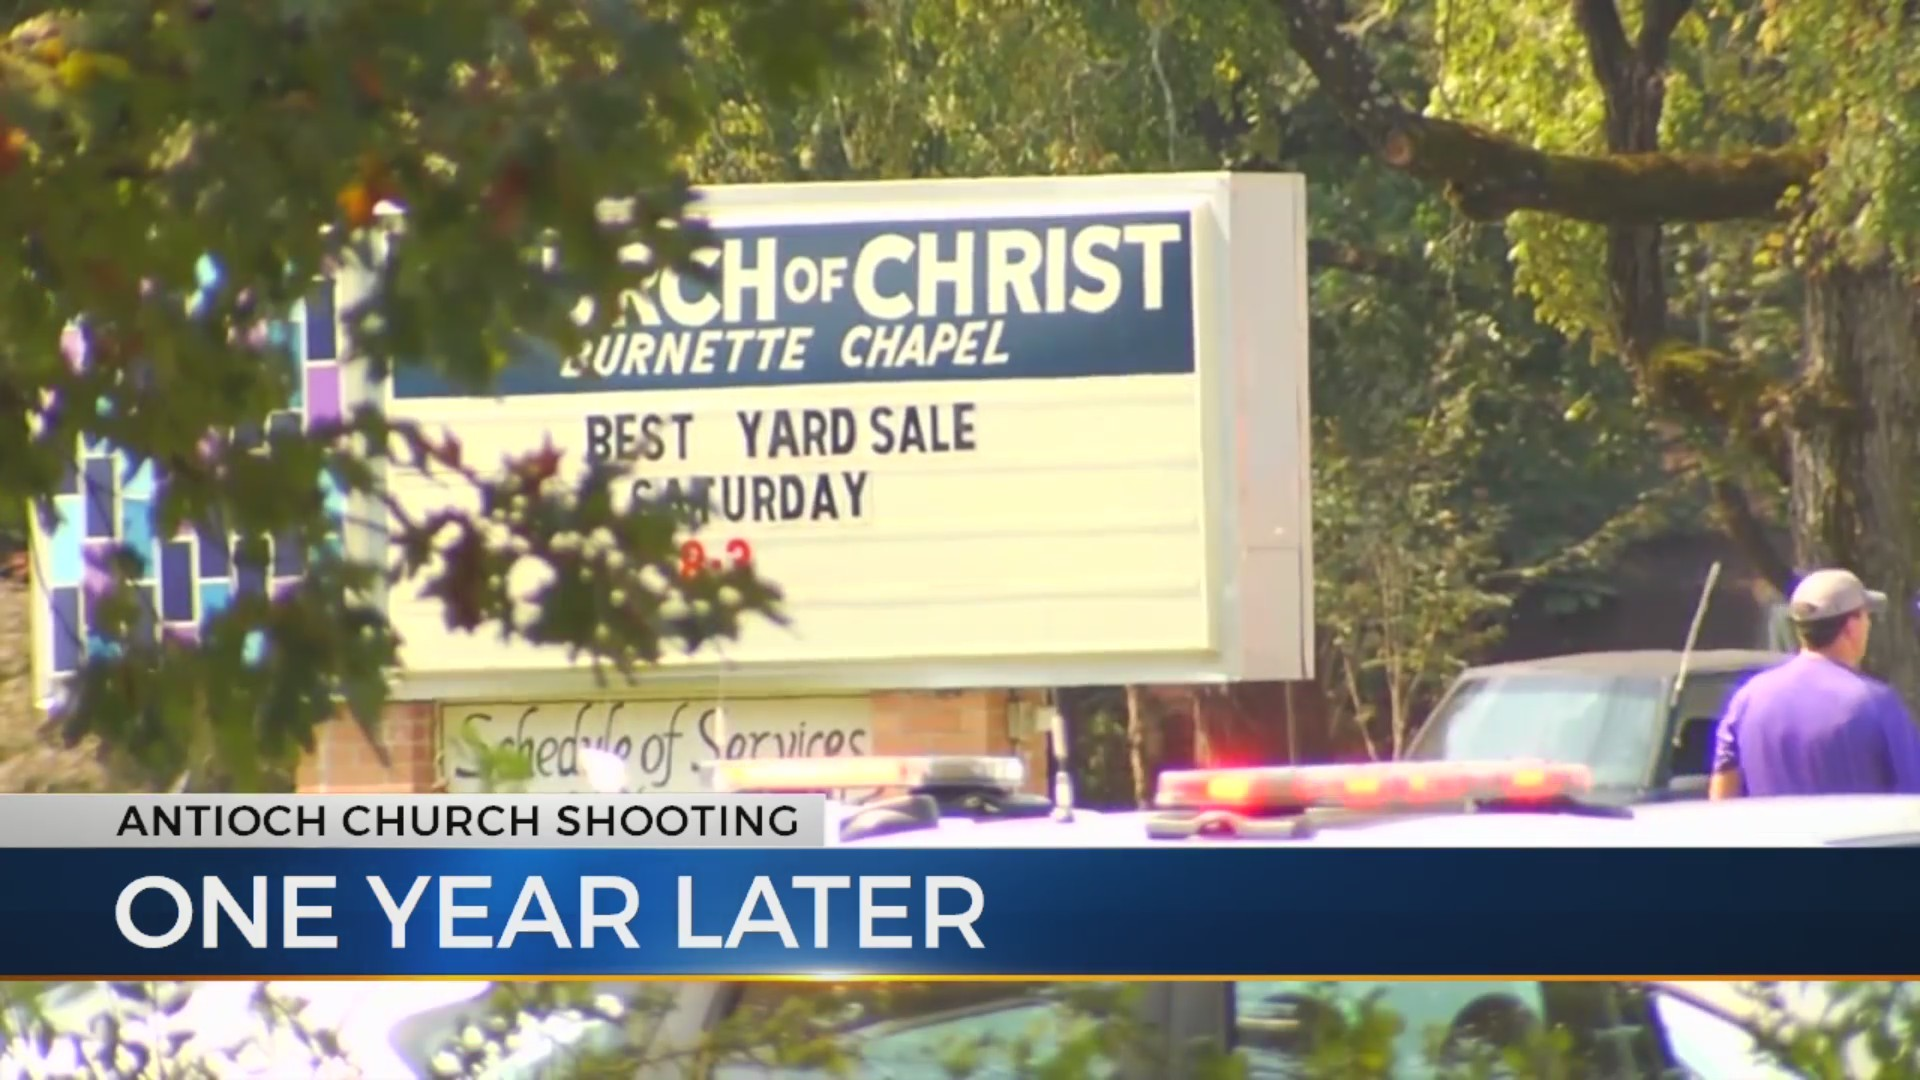 One year after Antioch church shooting